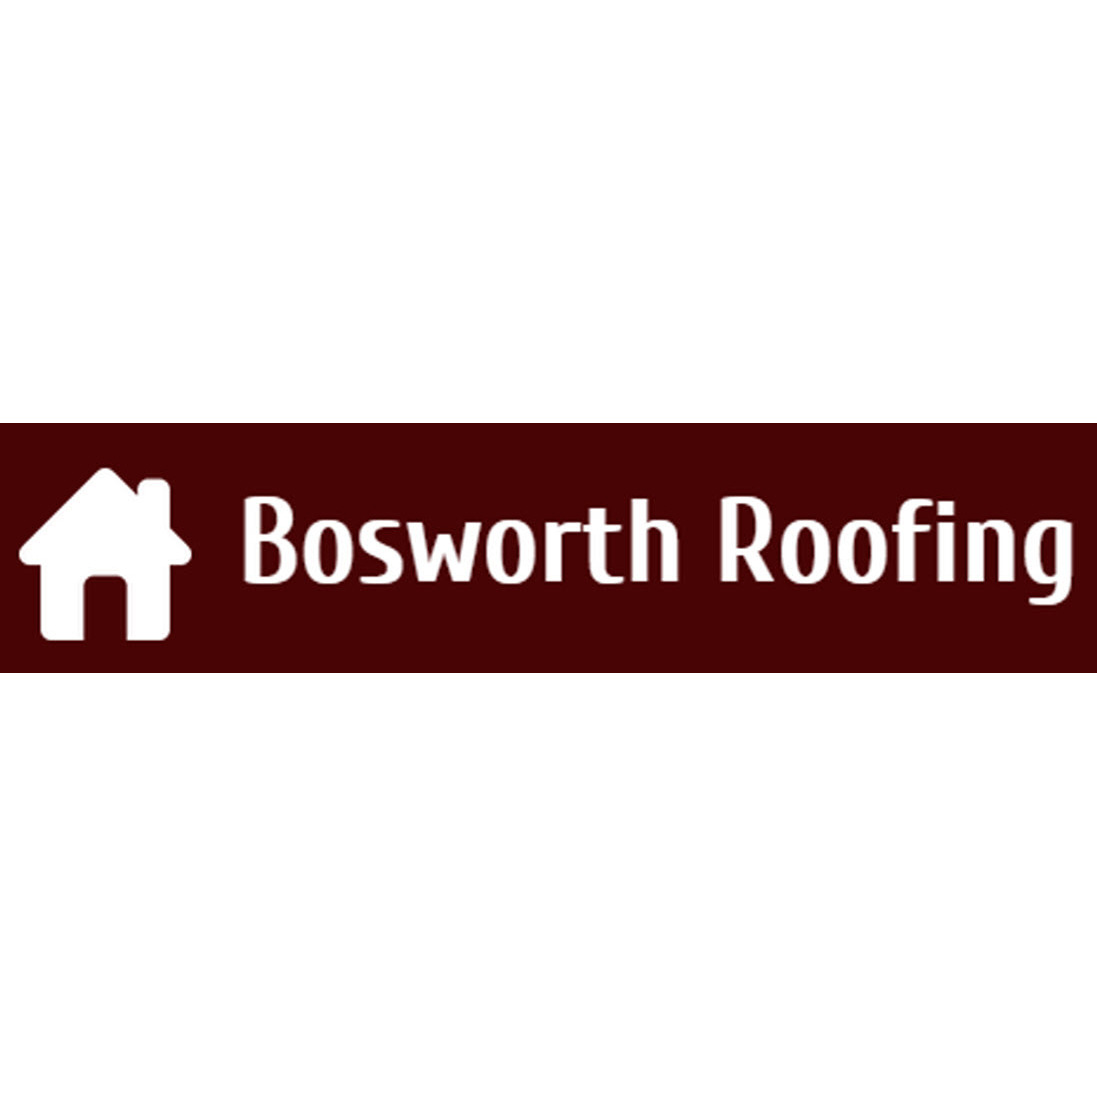 Bosworth Roofing